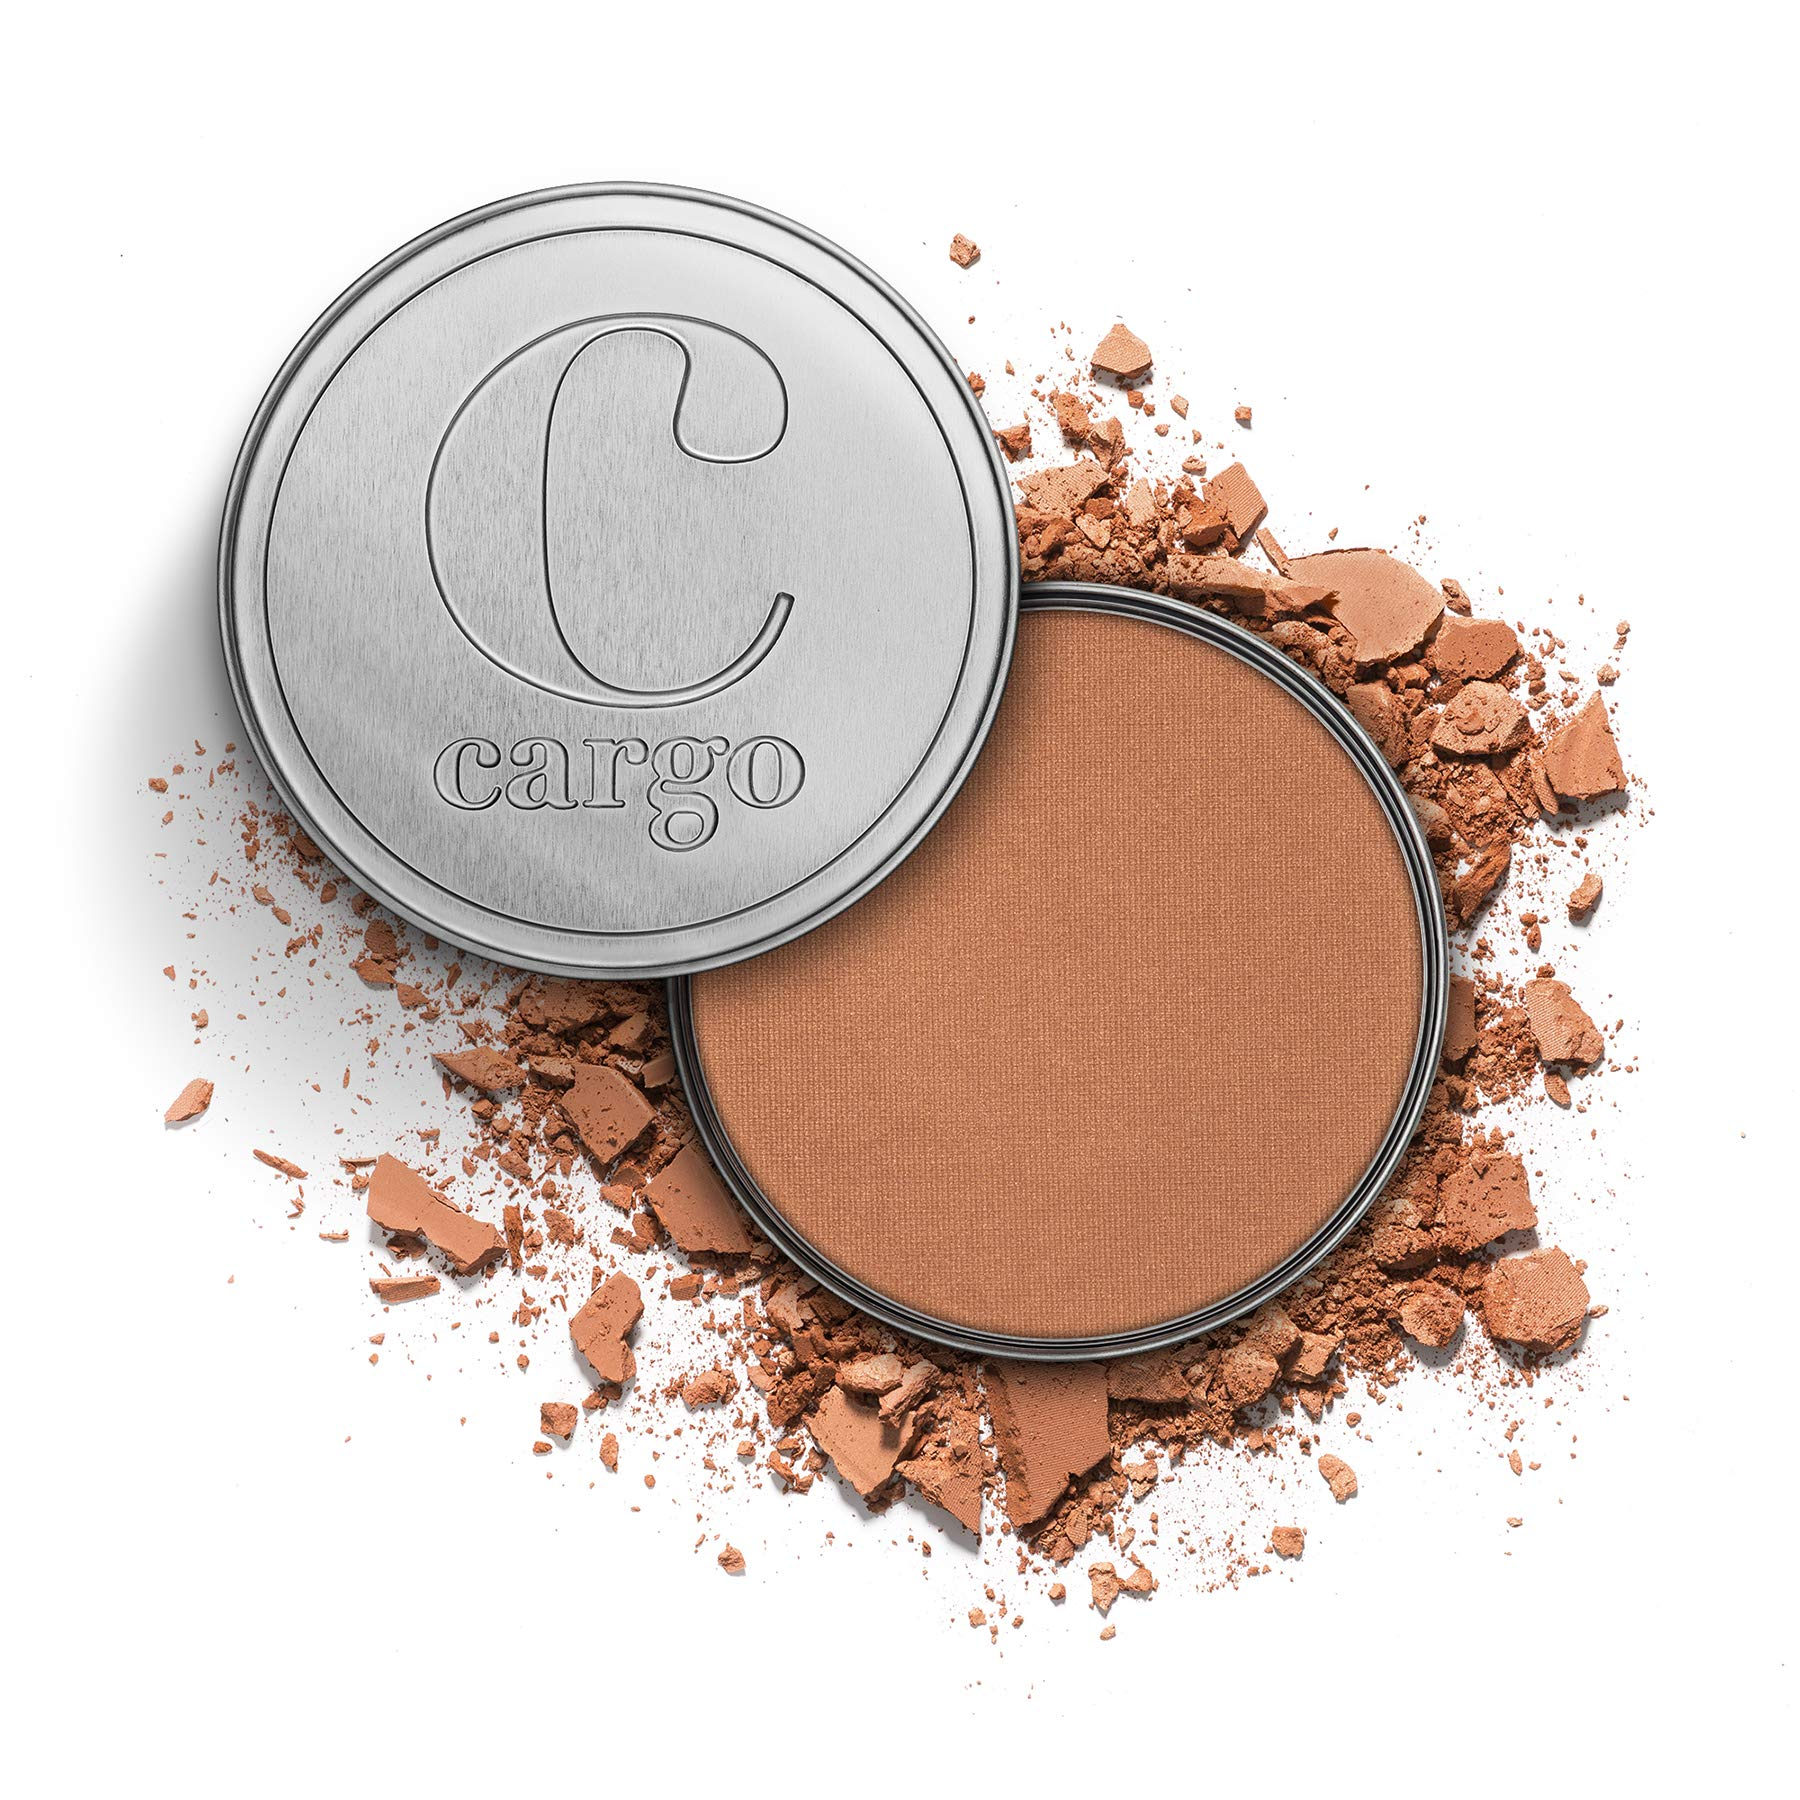 Cargo Cosmetics - Buildable Bronzing Powder, Contouring and Blendable, Medium